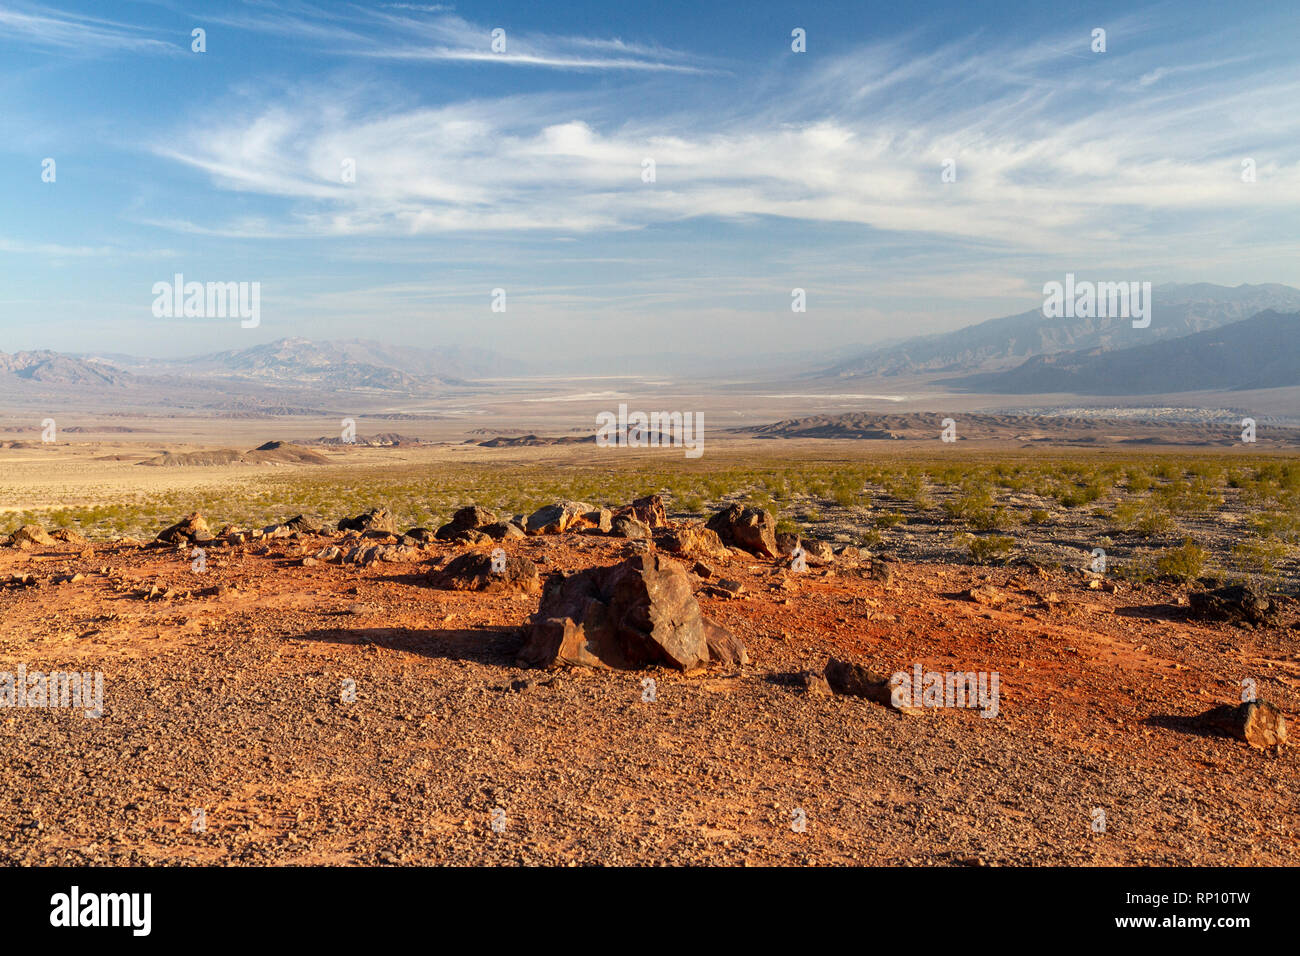 Hells Gate viewpoint looking south down Death Valley, Death Valley National Park, California, United States. - Stock Image